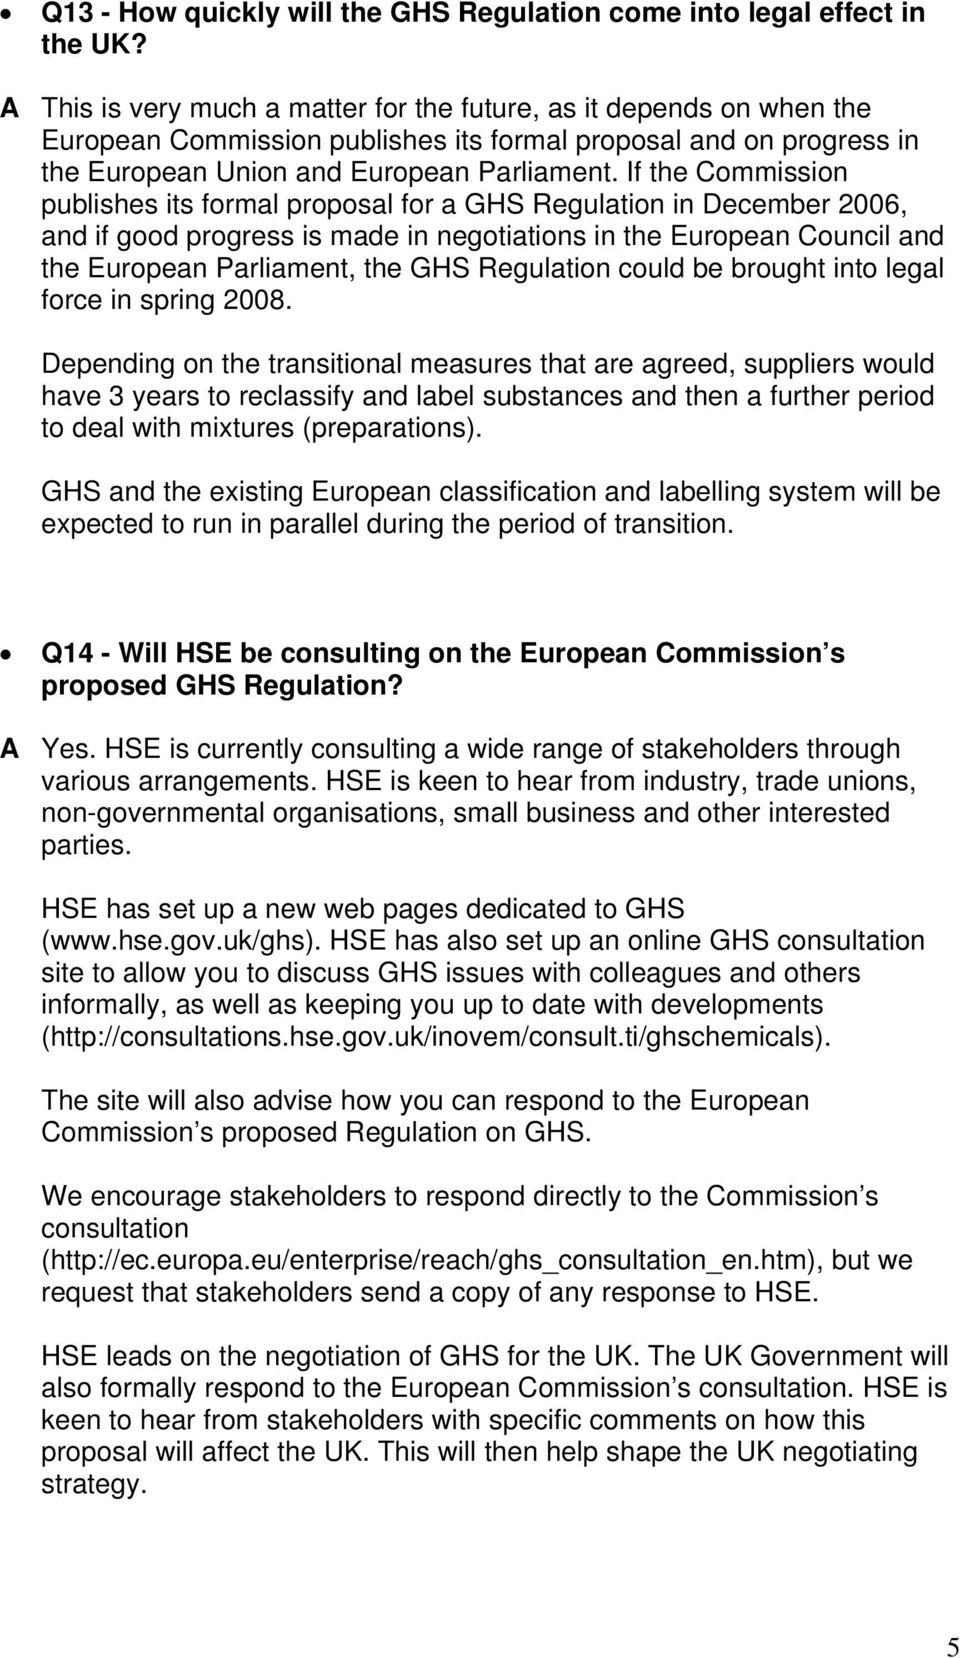 If the Commission publishes its formal proposal for a GHS Regulation in December 2006, and if good progress is made in negotiations in the European Council and the European Parliament, the GHS